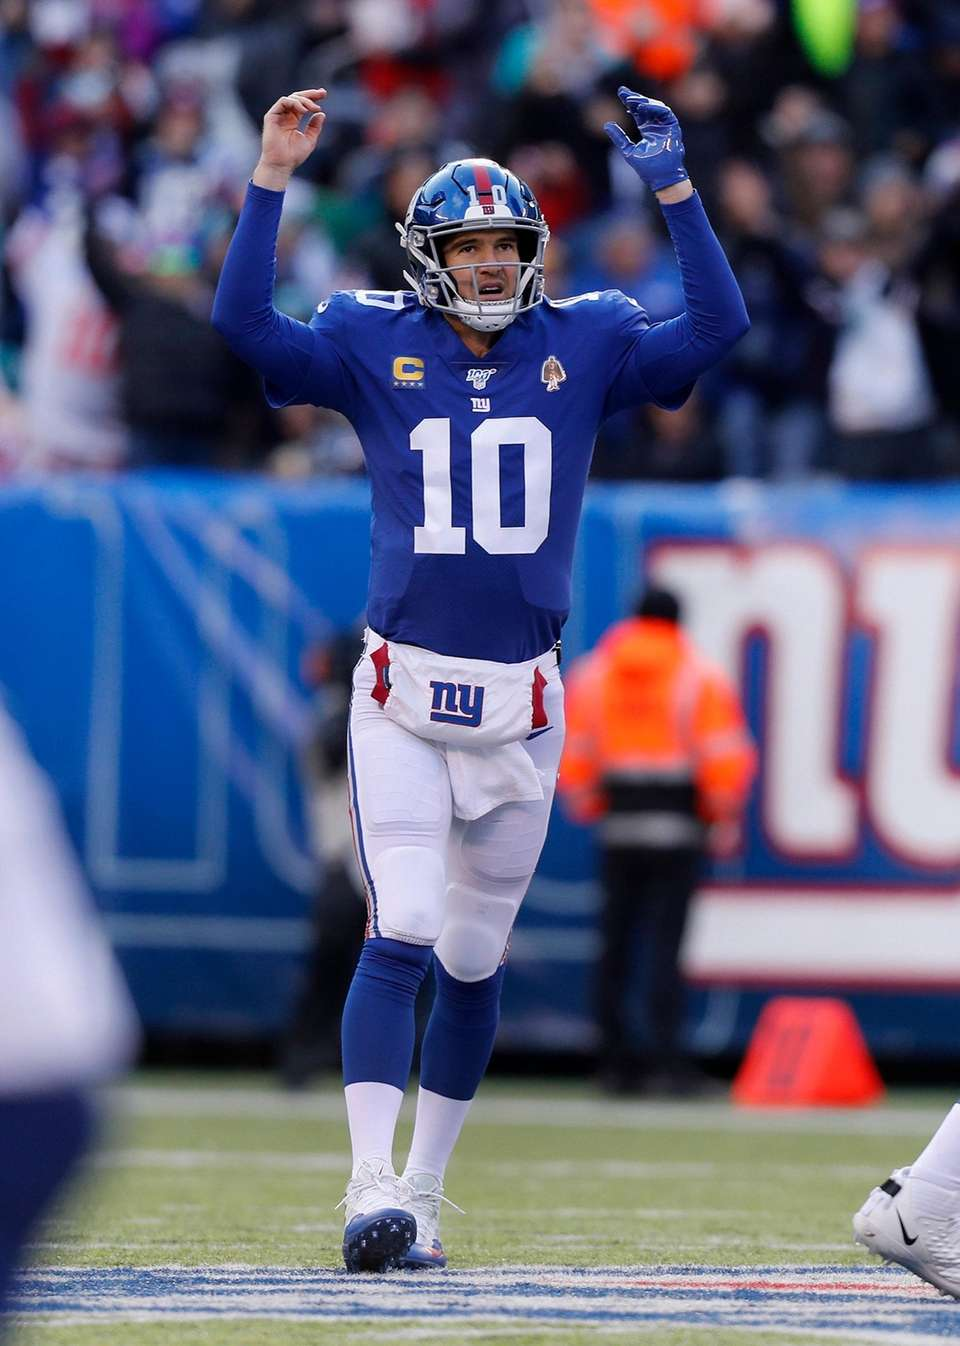 Eli Manning of the Giants celebrates after throwing